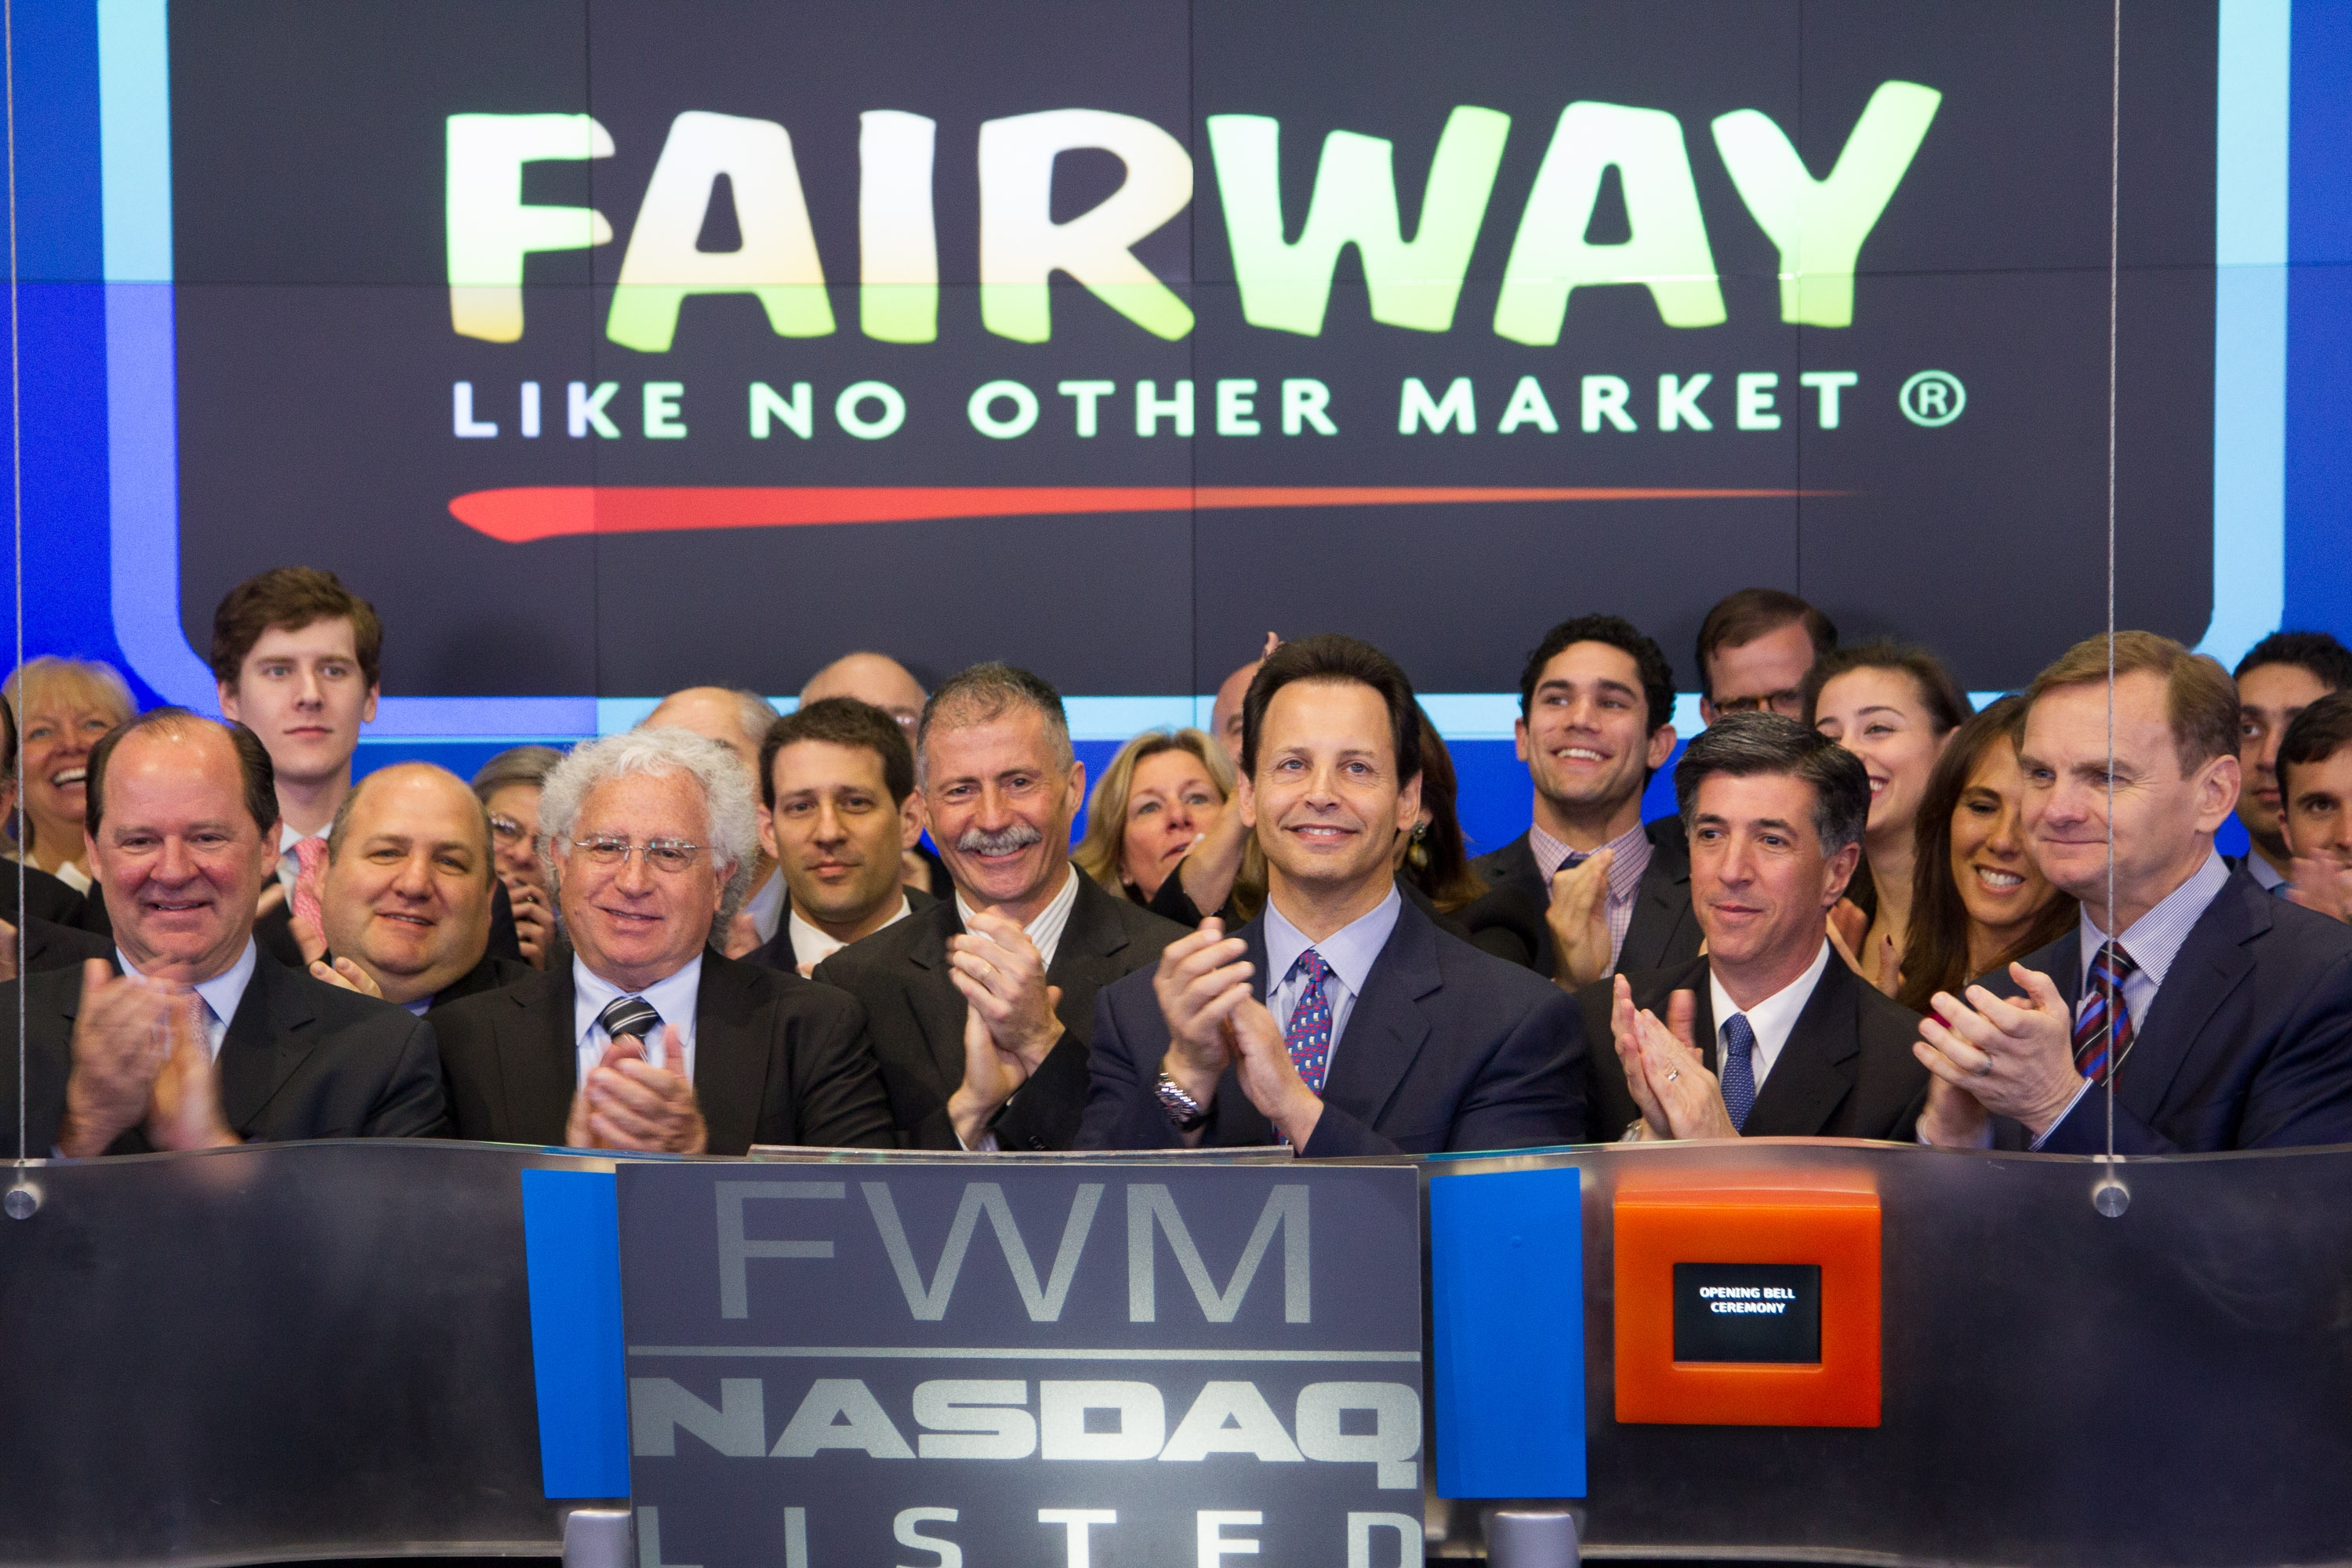 Fairway Group Holdings Corporation